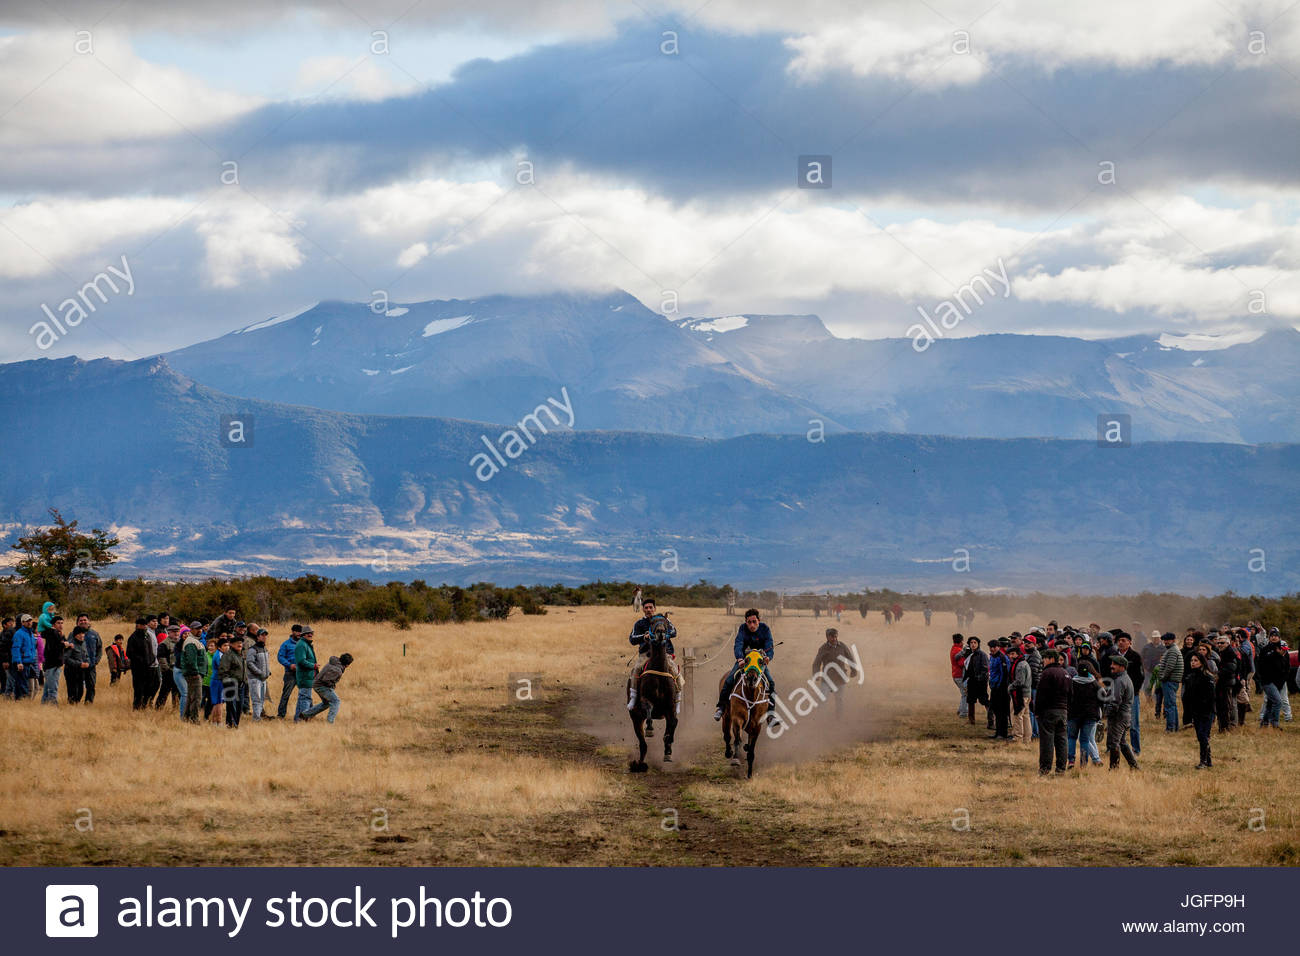 Horse racing during a Jineteada Festival on a ranch near Puerto Natales, Chile. - Stock Image